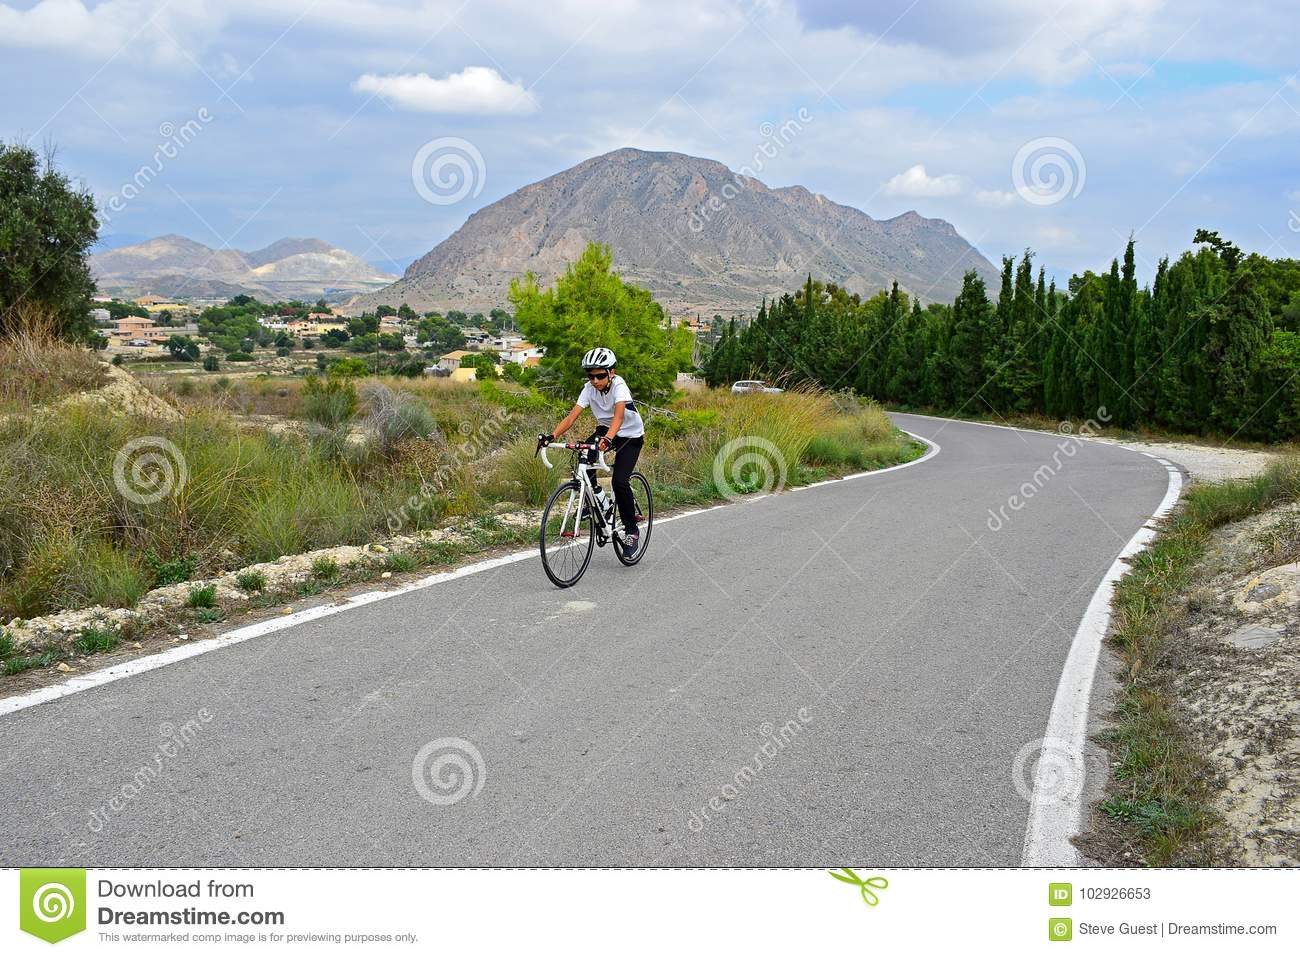 A Cyclist In The Mountains With Stunning Scenery